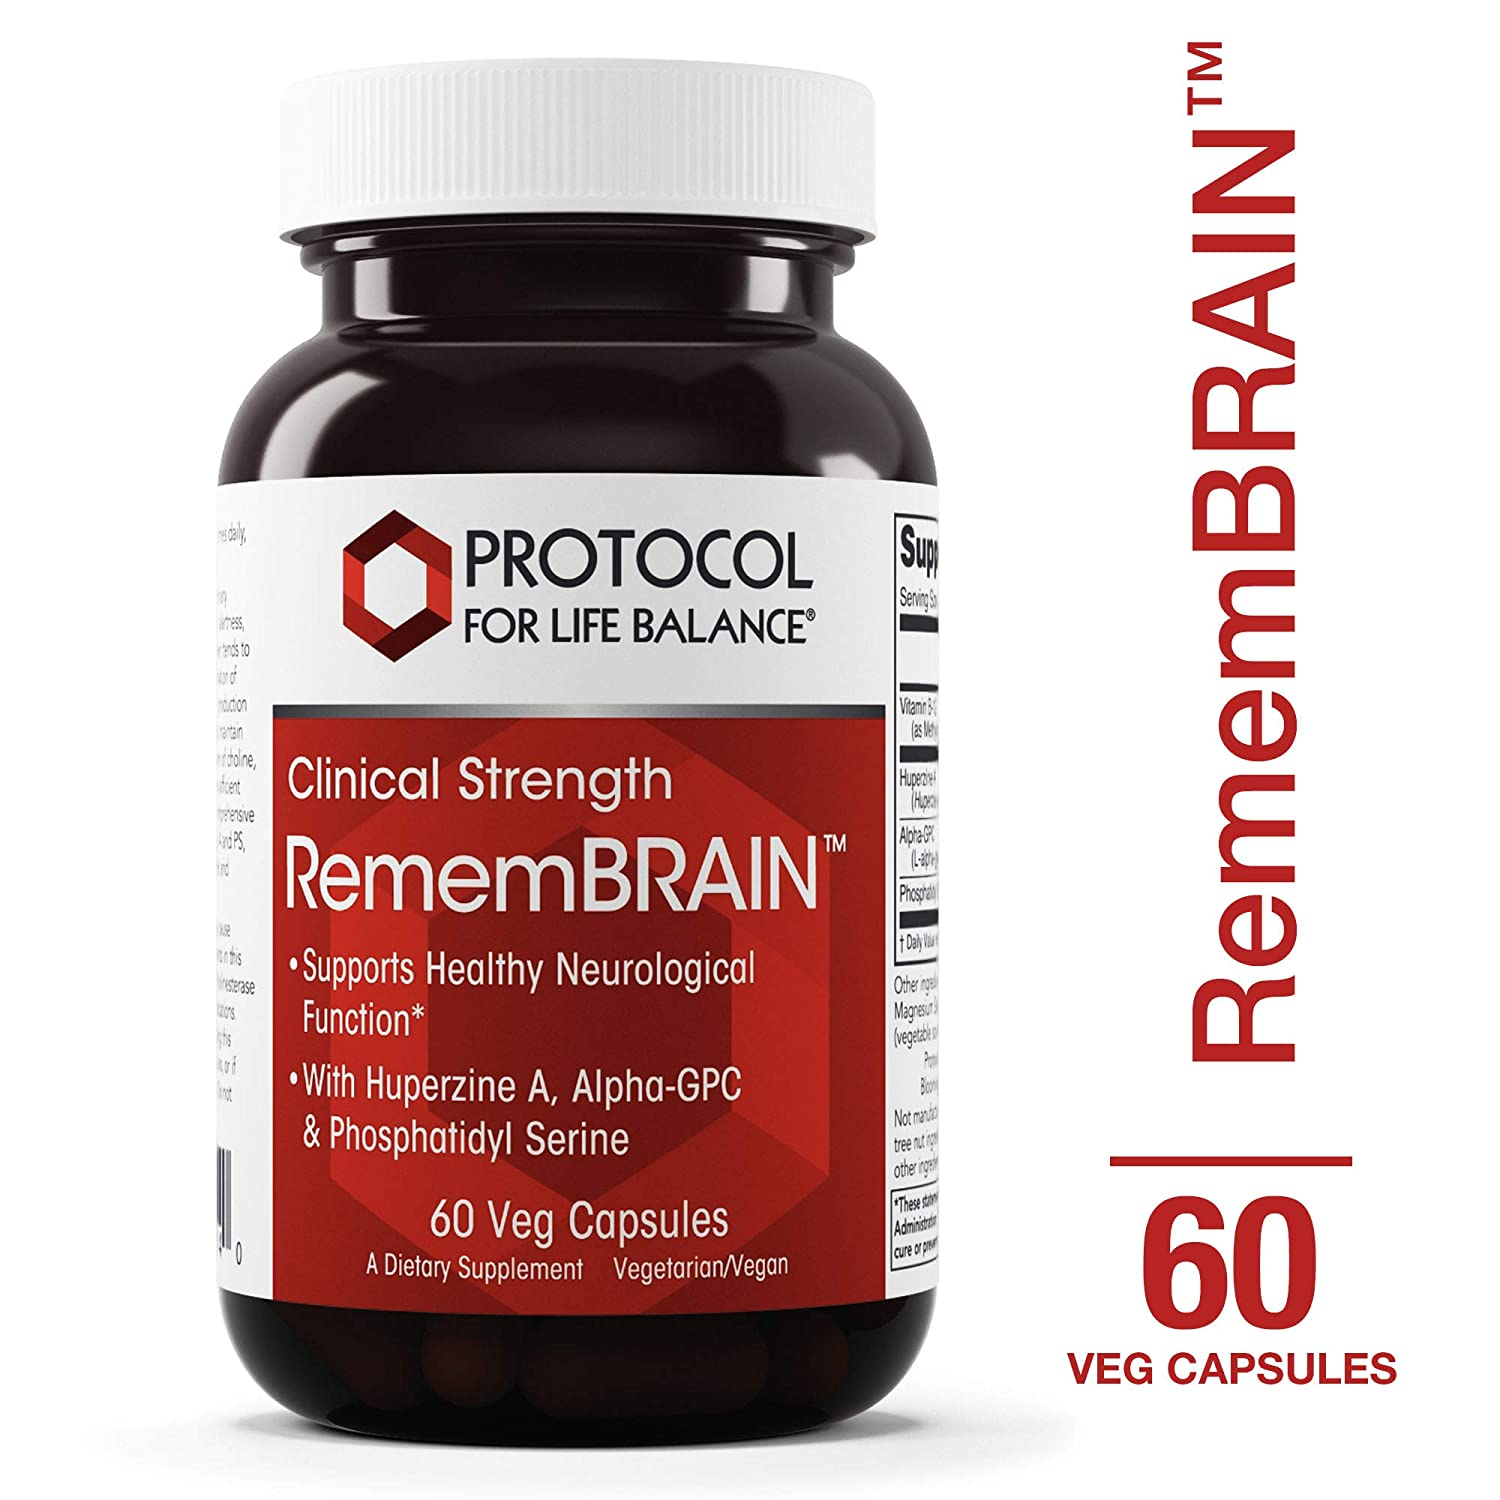 Protocol For Life Balance – RememBRAIN Clinical Strength – with Memorzine Huperzine A, Alpha-GPC Phosphatidyl Serine to Support Neurological Function – 60 Veg Capsules